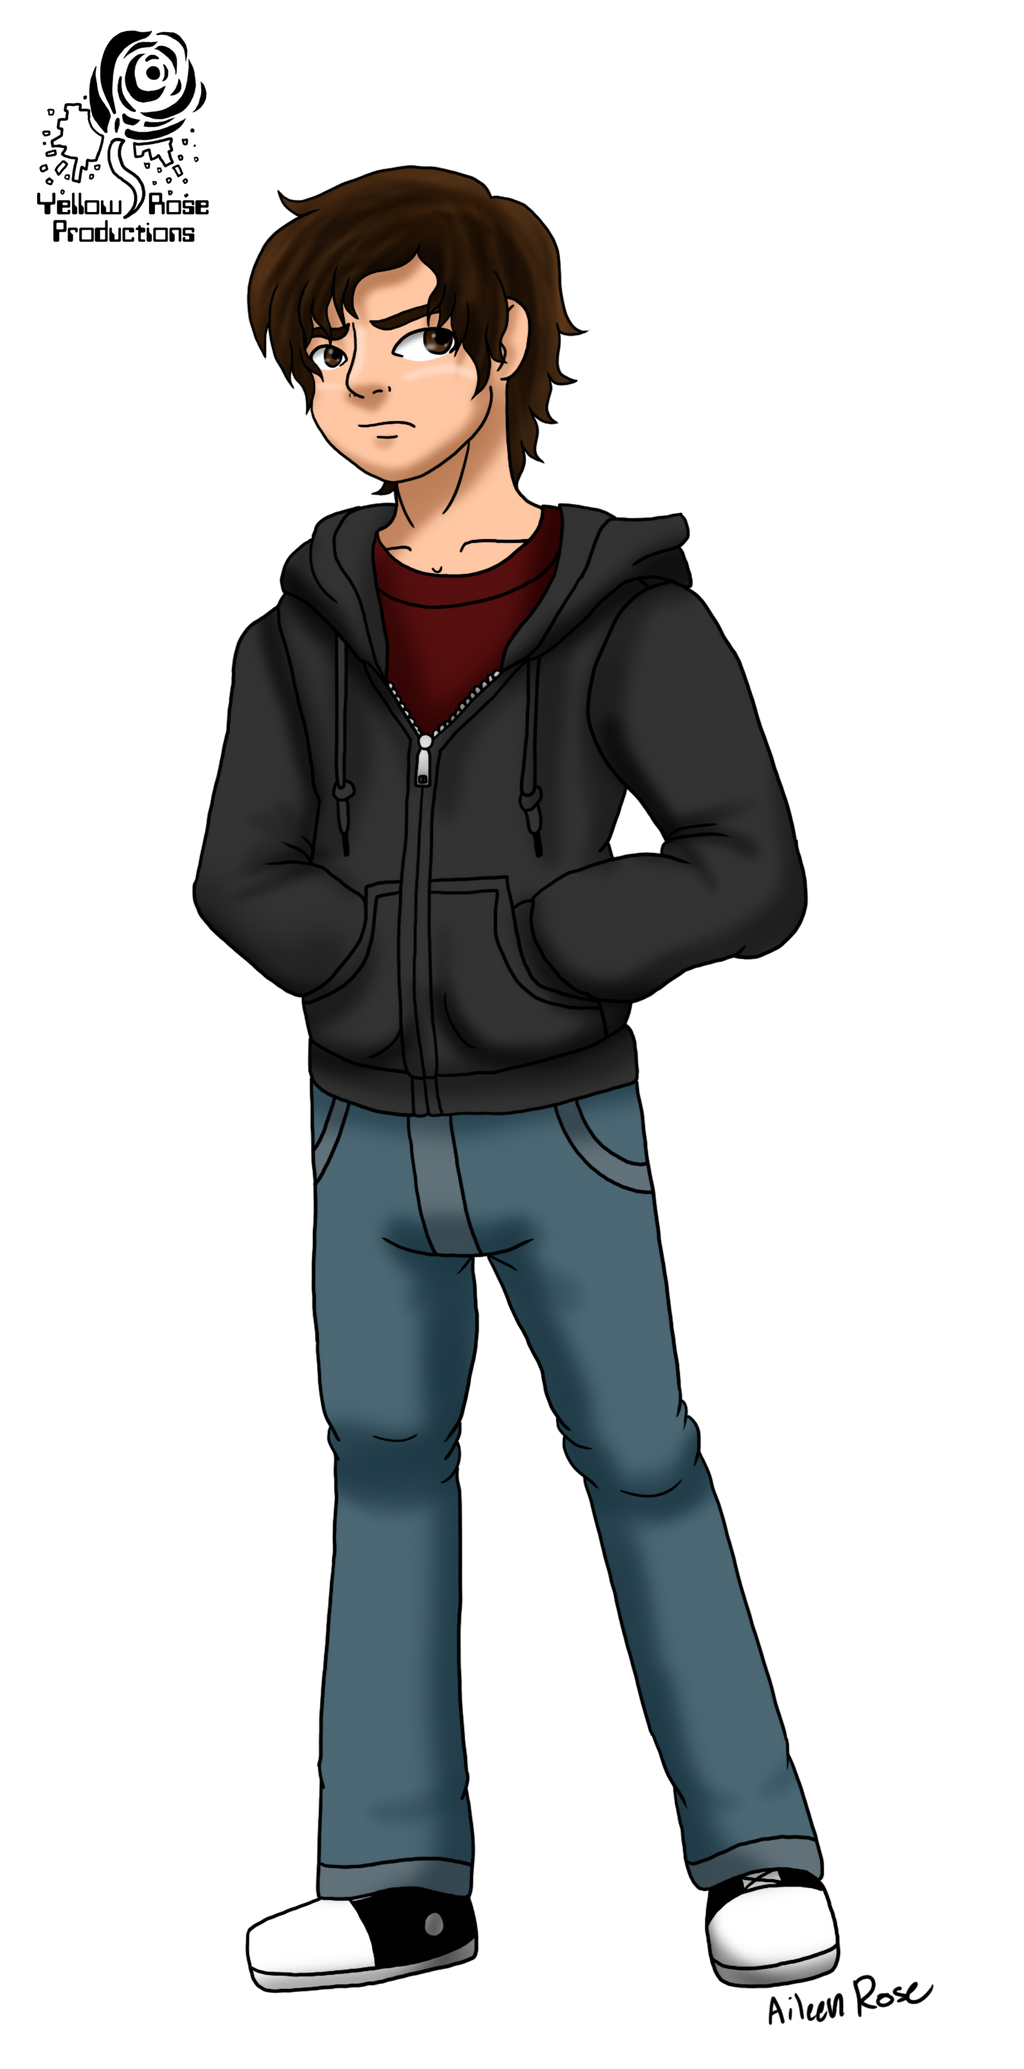 connor from unwind Unwind by neal shusterman meet connor 1 based on how did you feel when you read about the actual unwinding from an unwind's point-of-view.